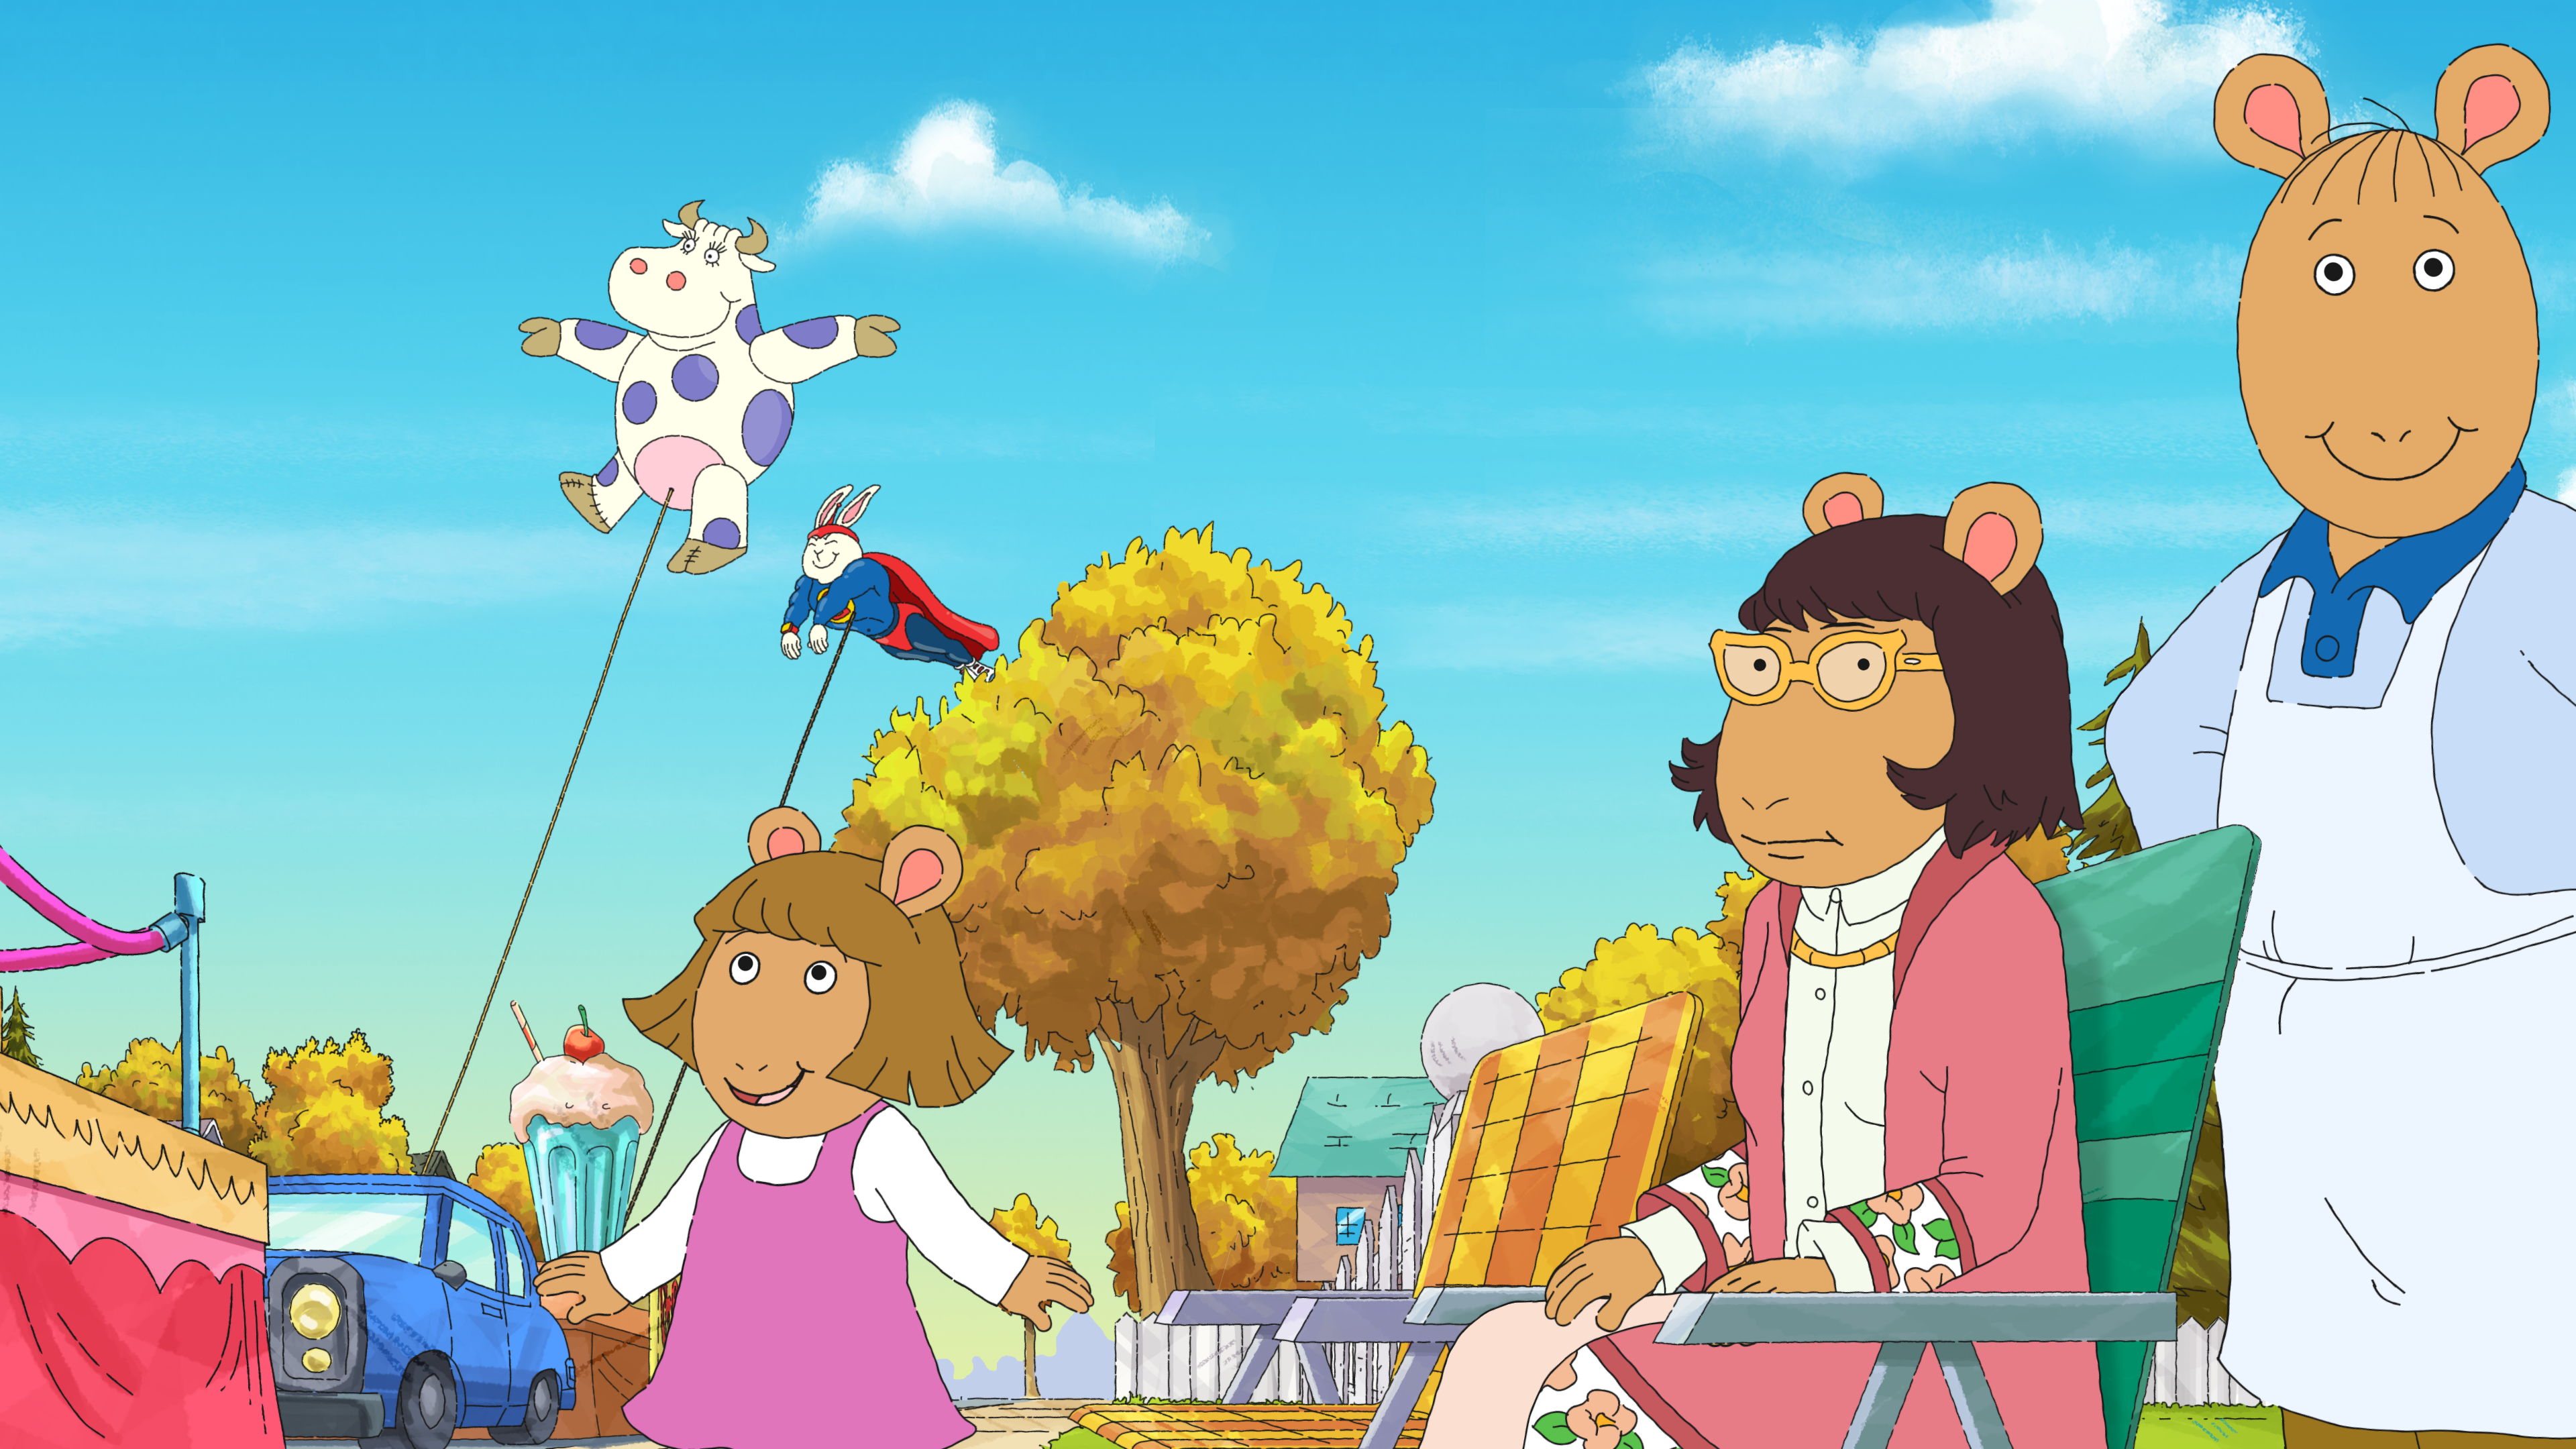 Arthur cartoon characters looking at balloon in sky